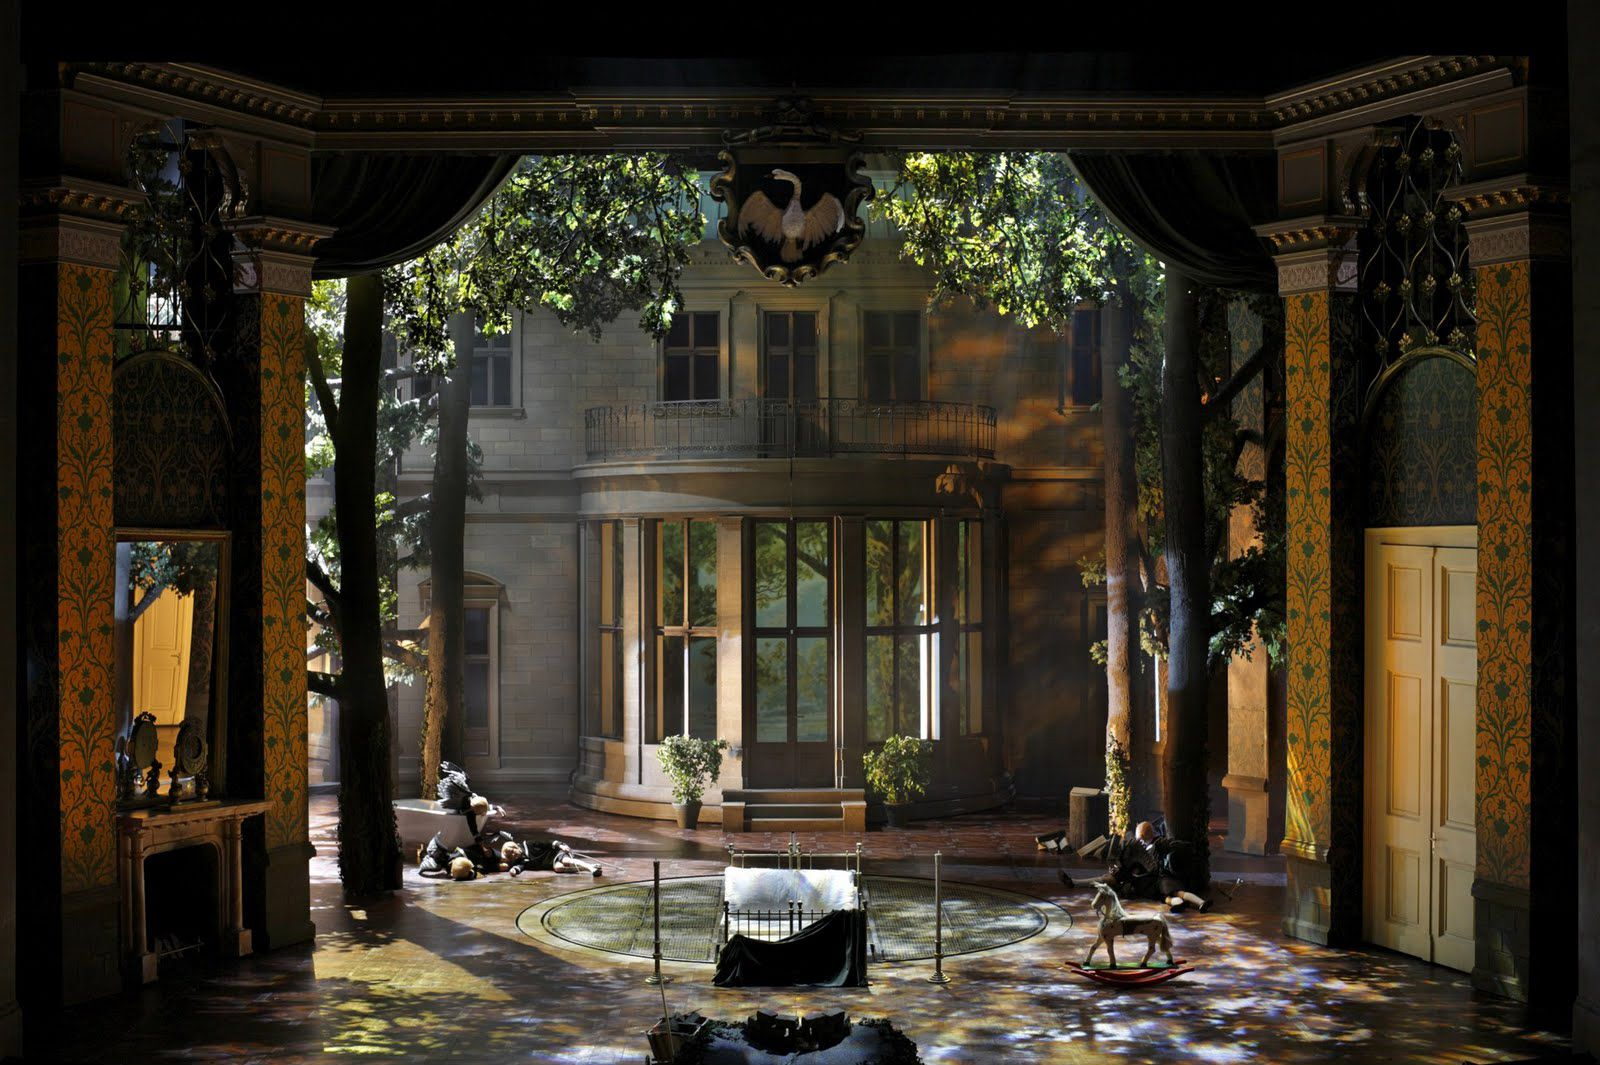 Parsifal. Bayreuth Festival. Scenic design by Heike Scheele. 2011